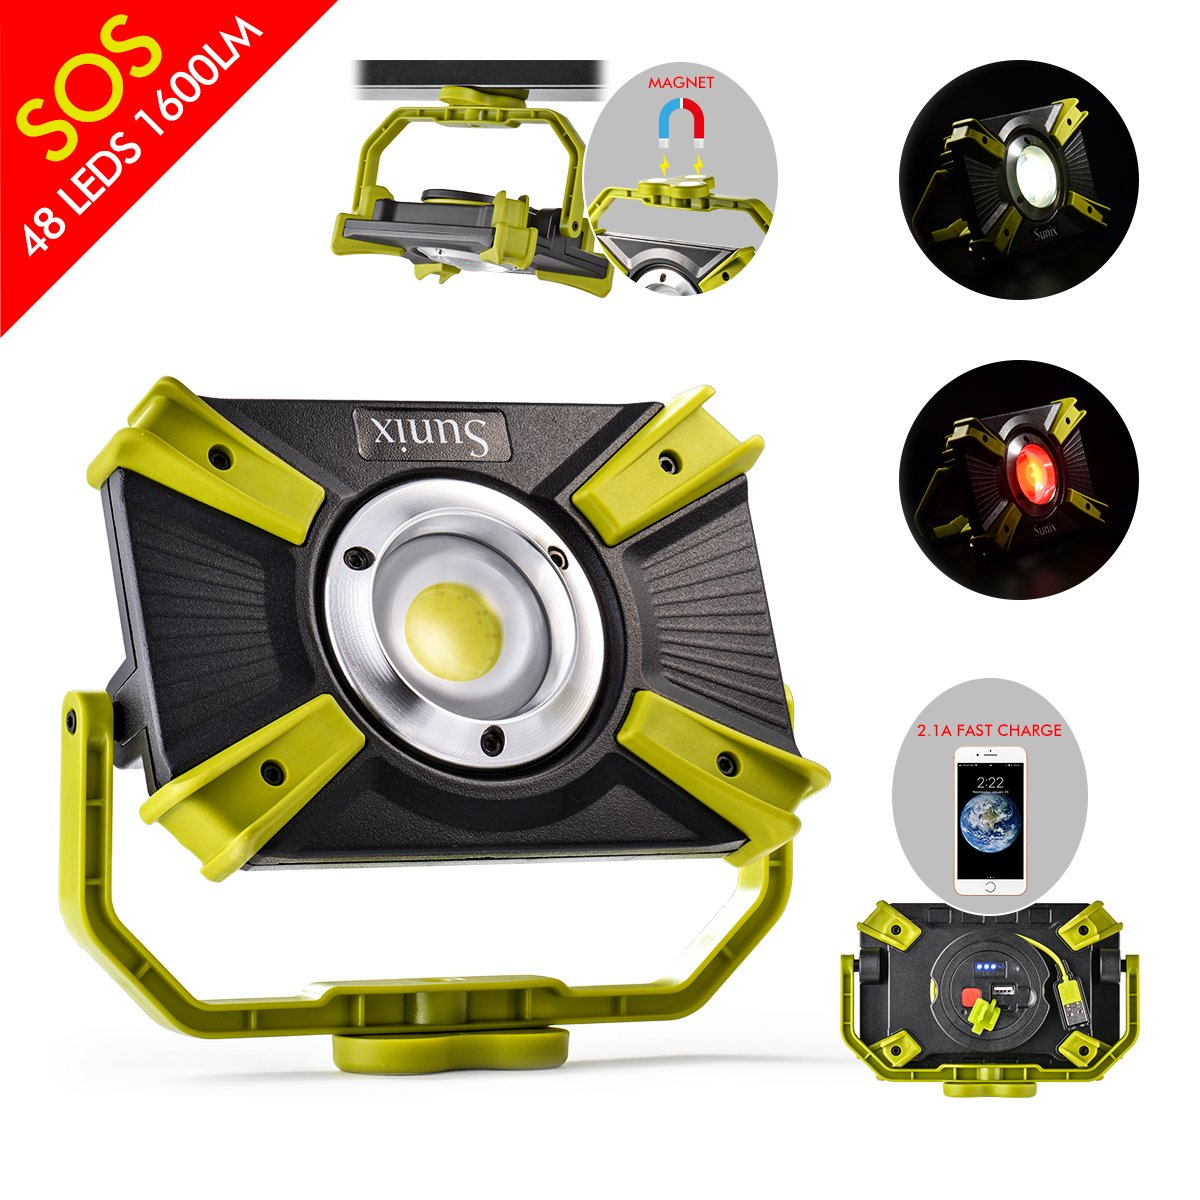 Rechargeable LED Work Light 20W 1600LM SOS Mode 2.1A Fast Charging Magnetic Base Waterproof Spotlights Outdoor Camping Emergency Floodlights For Truck Tractor Workshop Construction Site